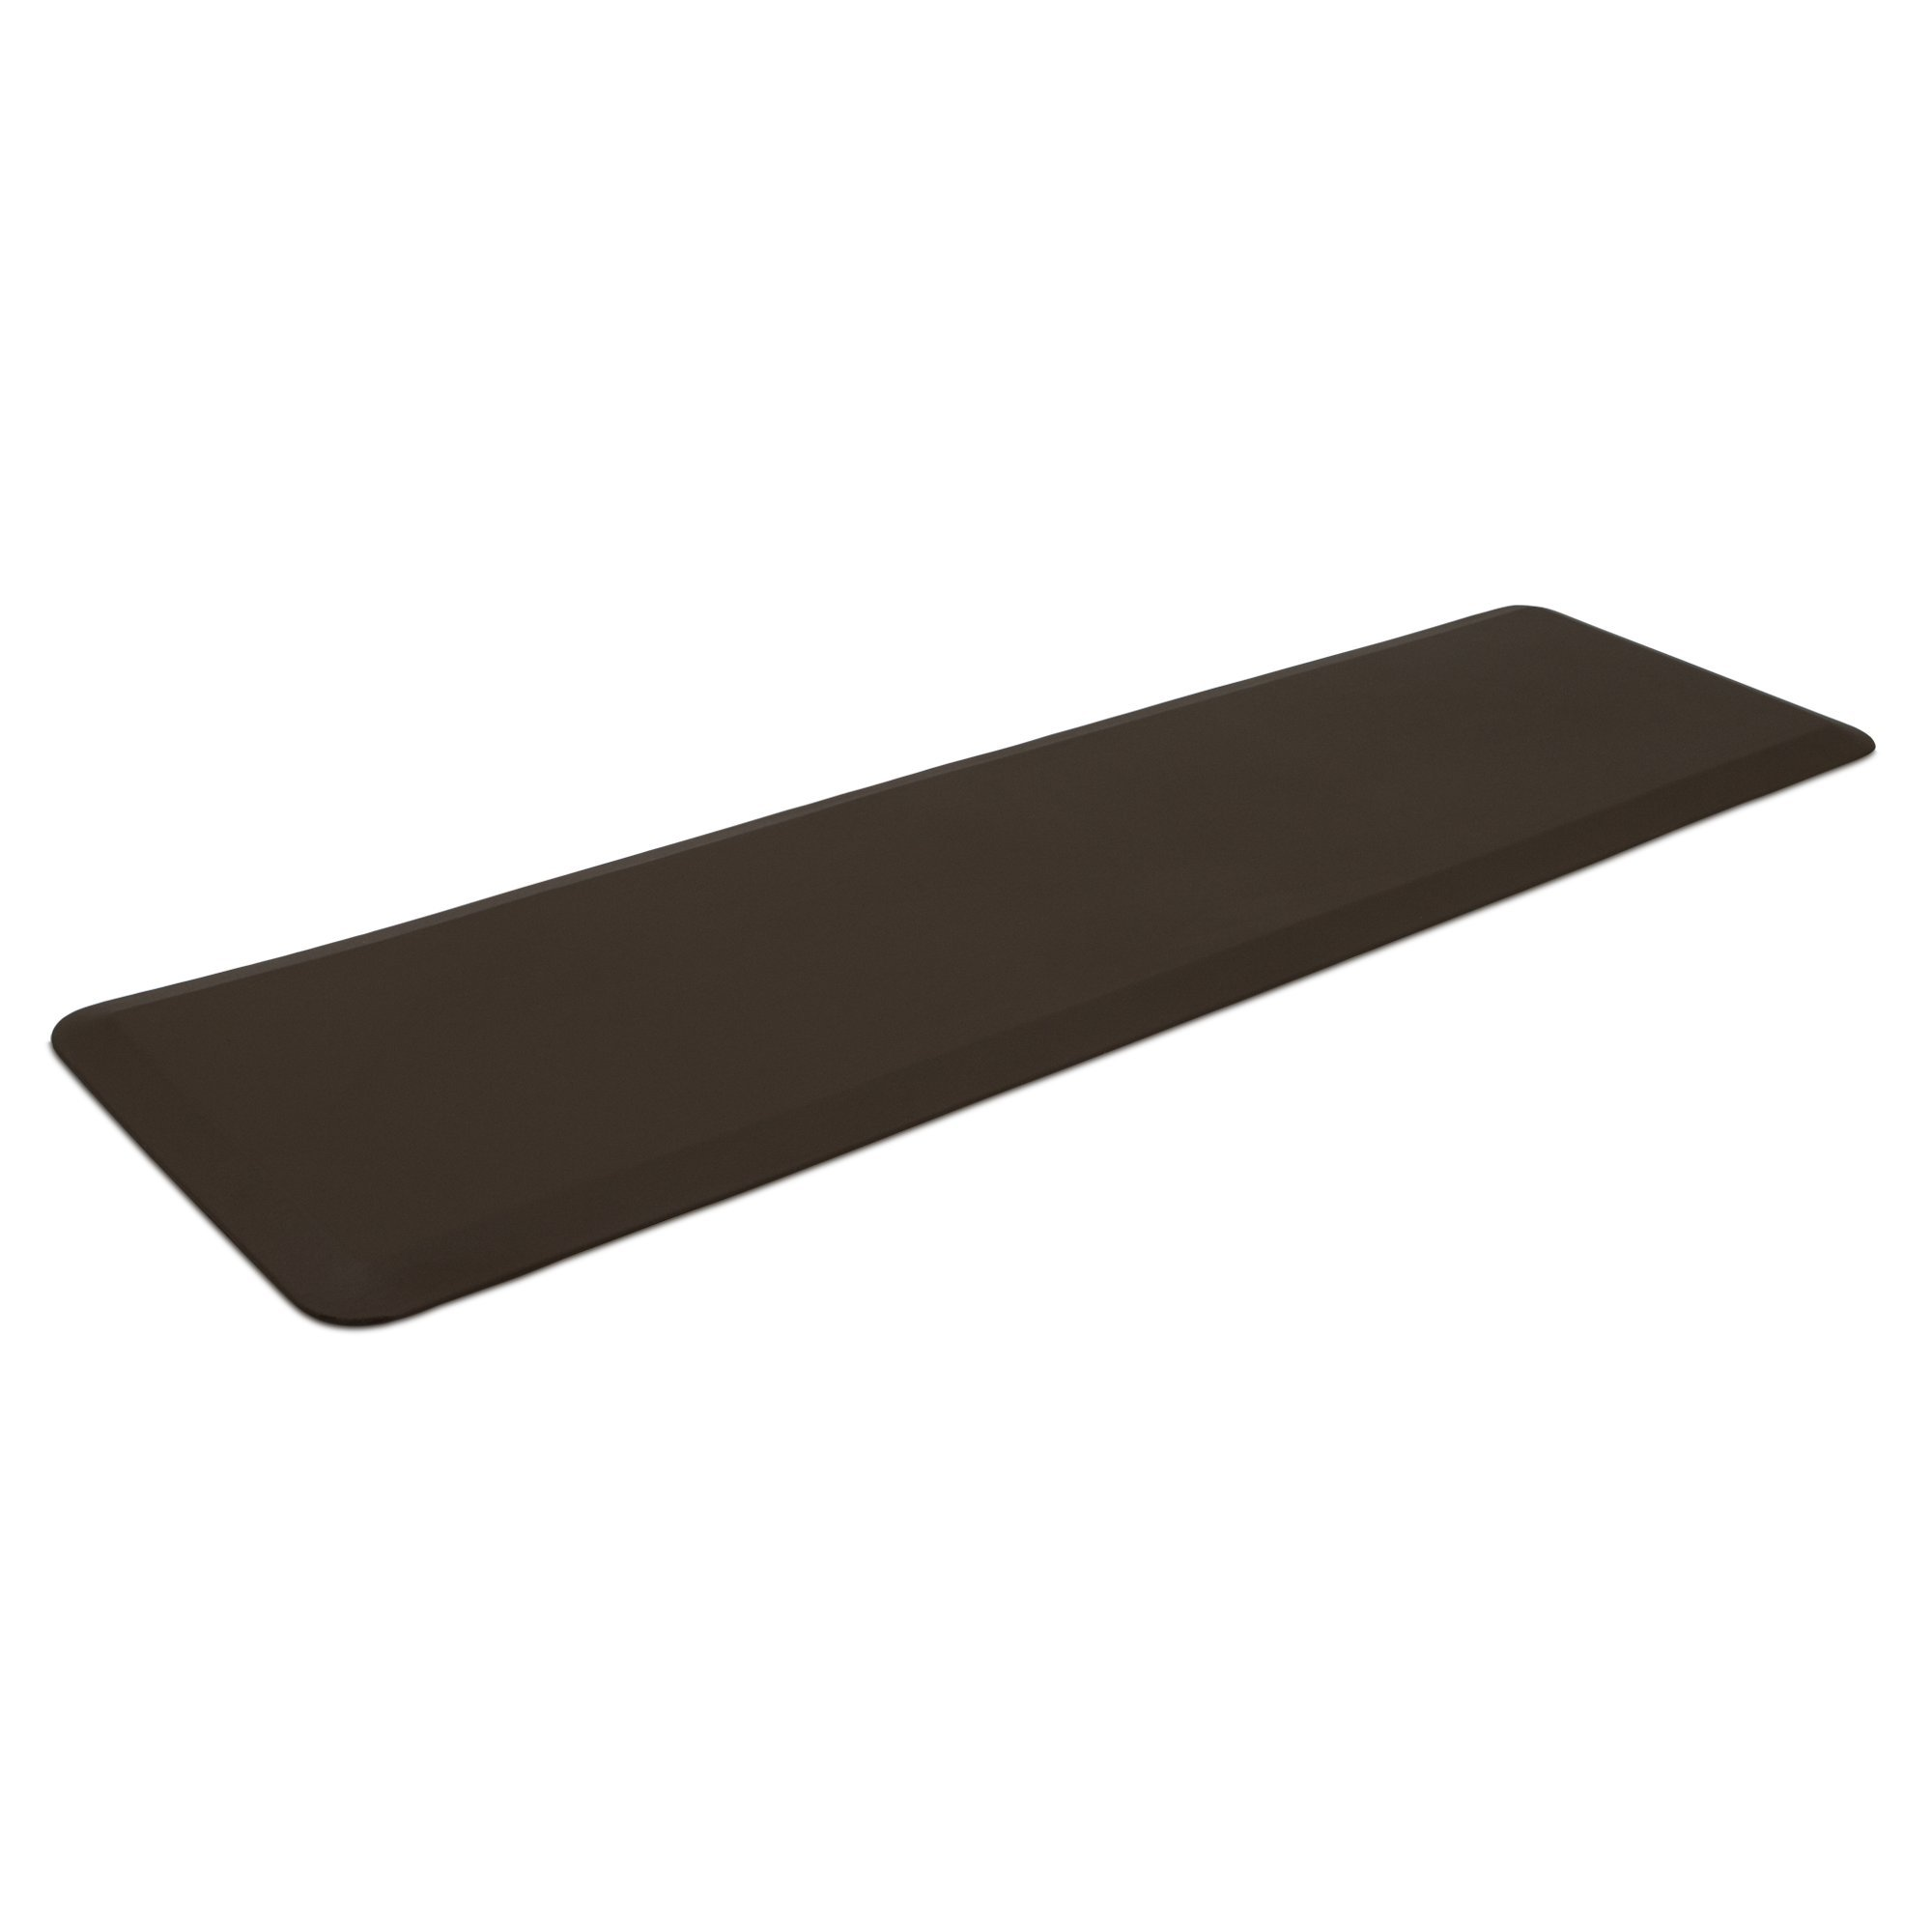 """NewLife by GelPro Professional Grade Anti-Fatigue Kitchen & Office Comfort Mat, 20x72, Earth ¾"""" Bio-Foam Mat with non-slip bottom for health & wellness by NewLife by GelPro (Image #2)"""